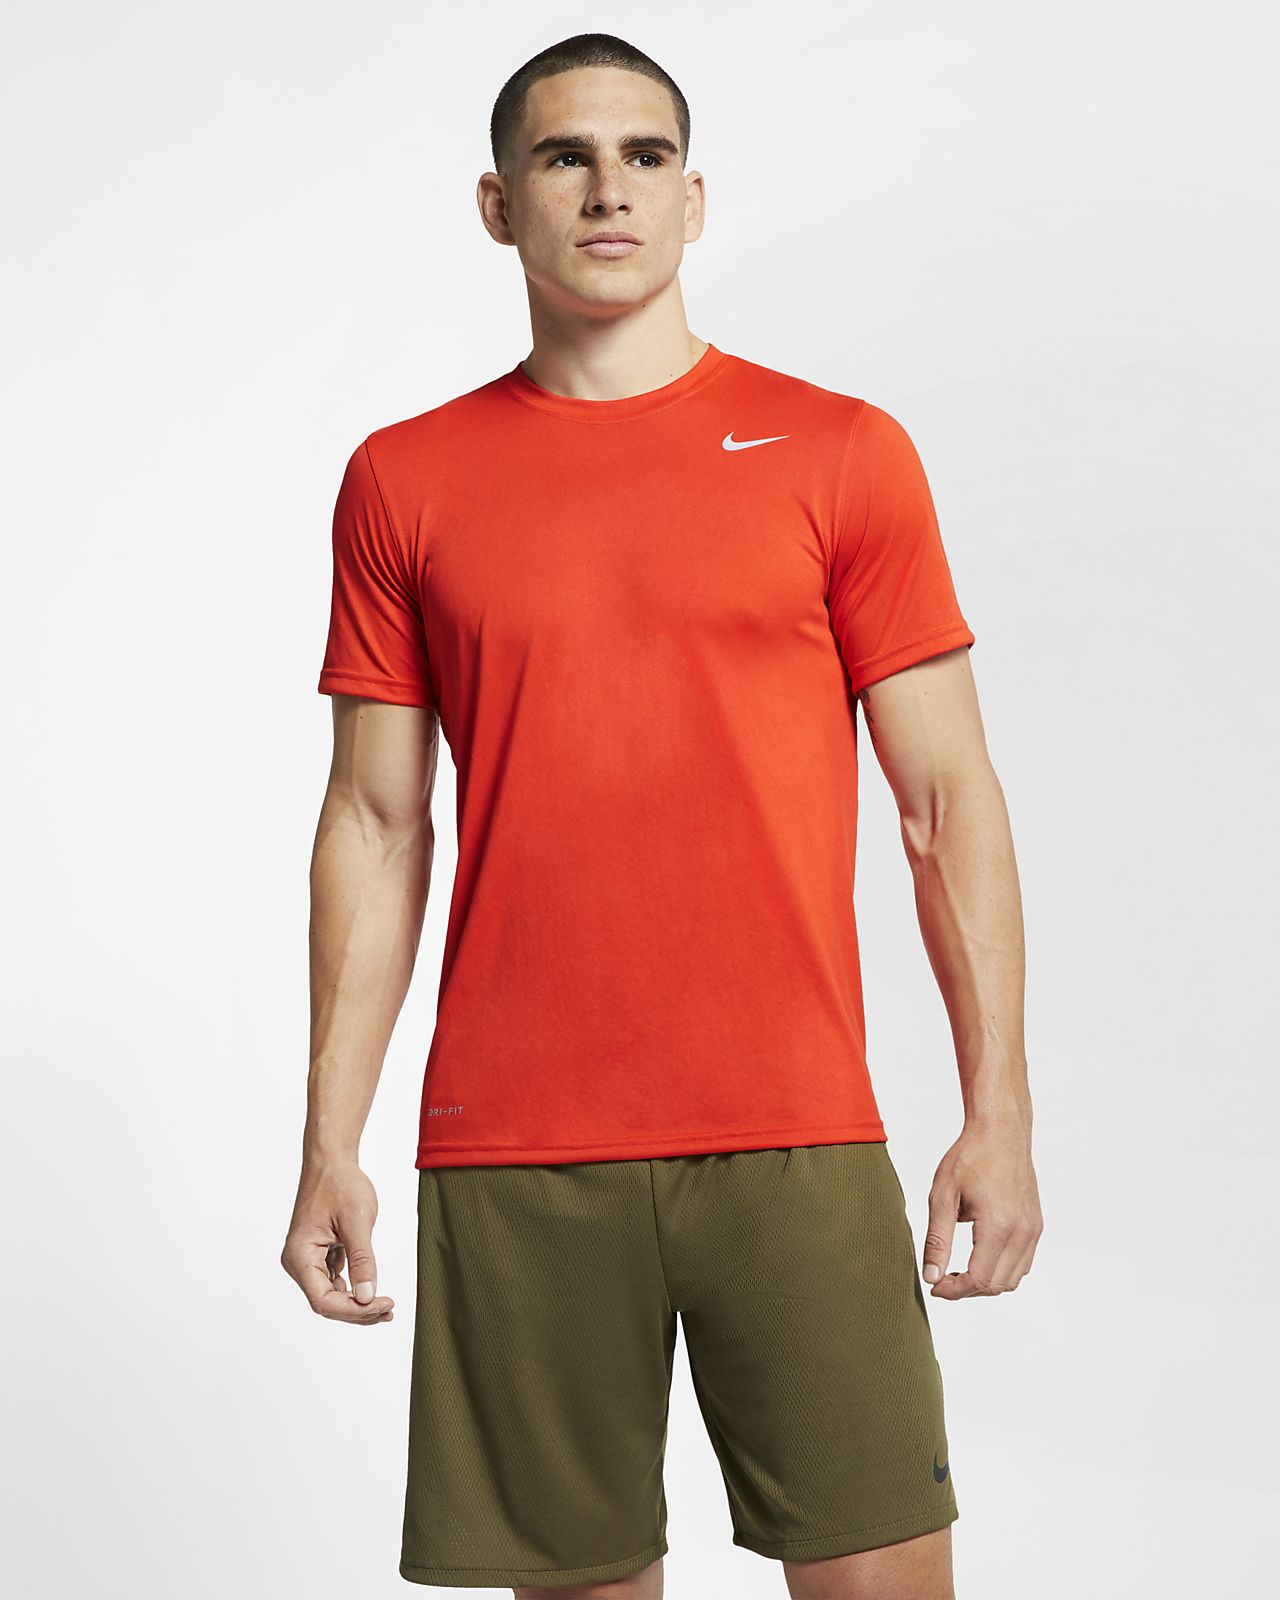 ee6d5122 Nike Legend 2.0 Men's Training T-Shirt. Nike.com